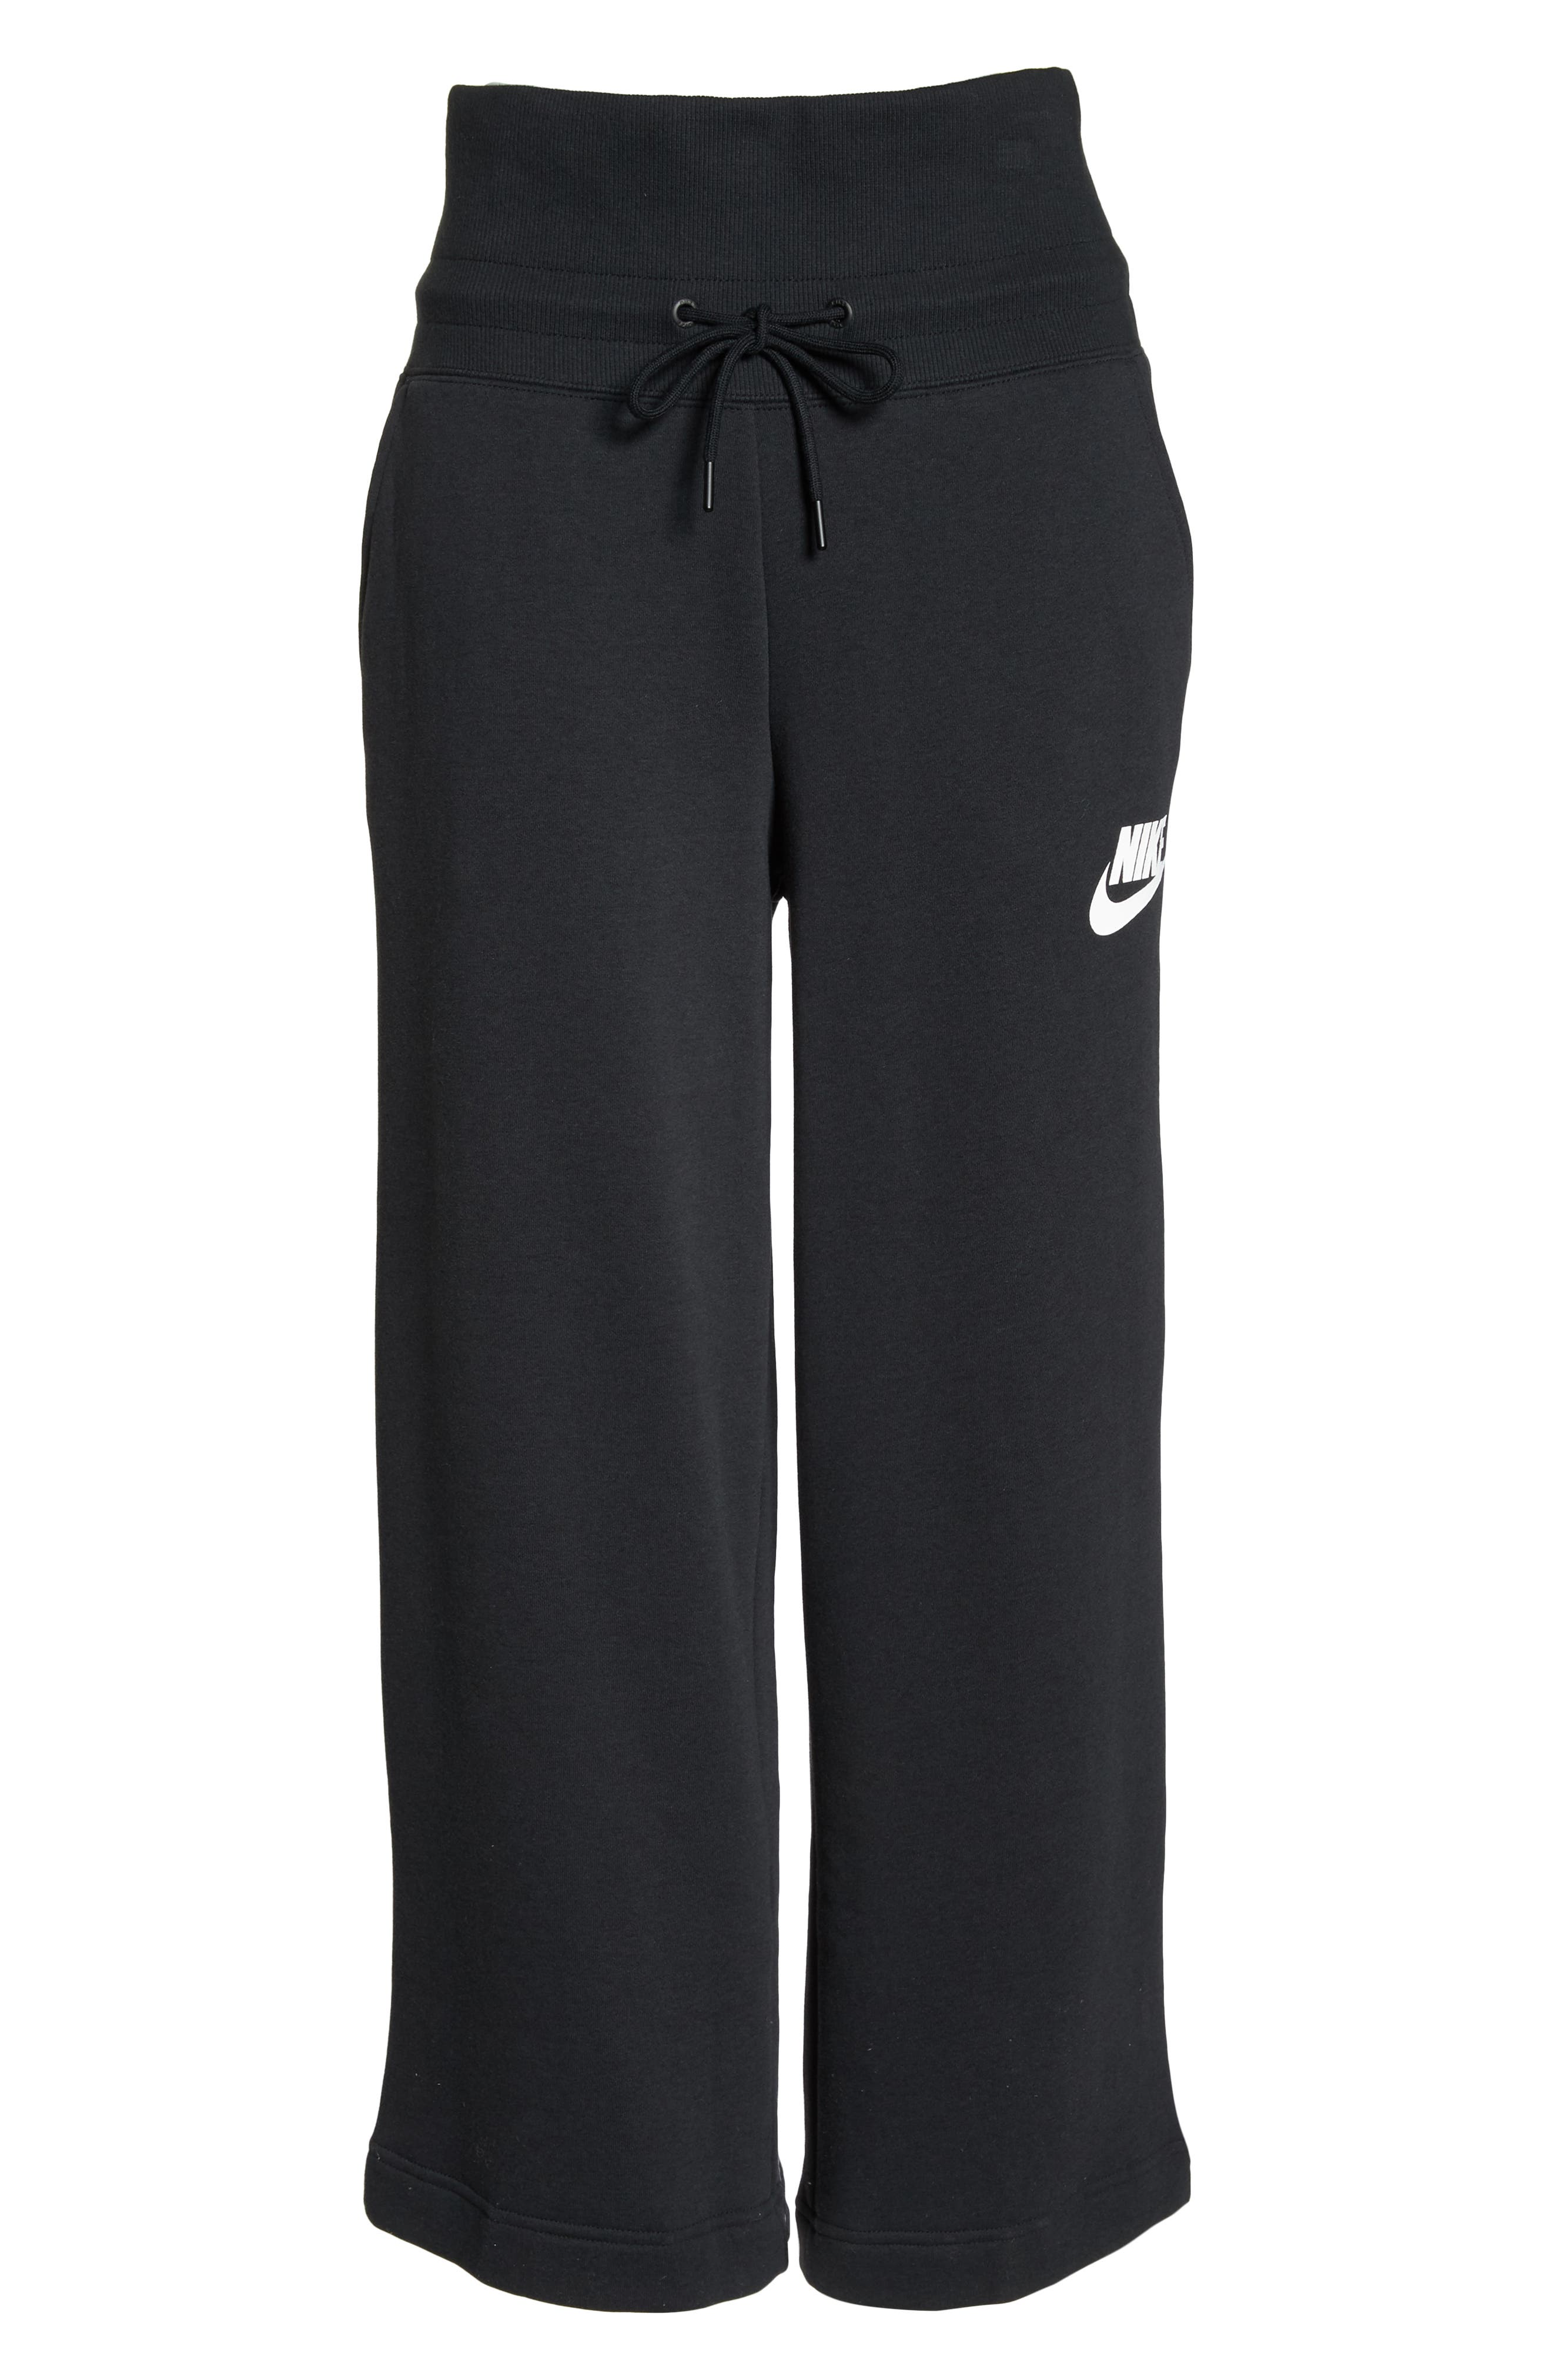 Sportswear Rally Cropped Pants,                             Alternate thumbnail 7, color,                             010